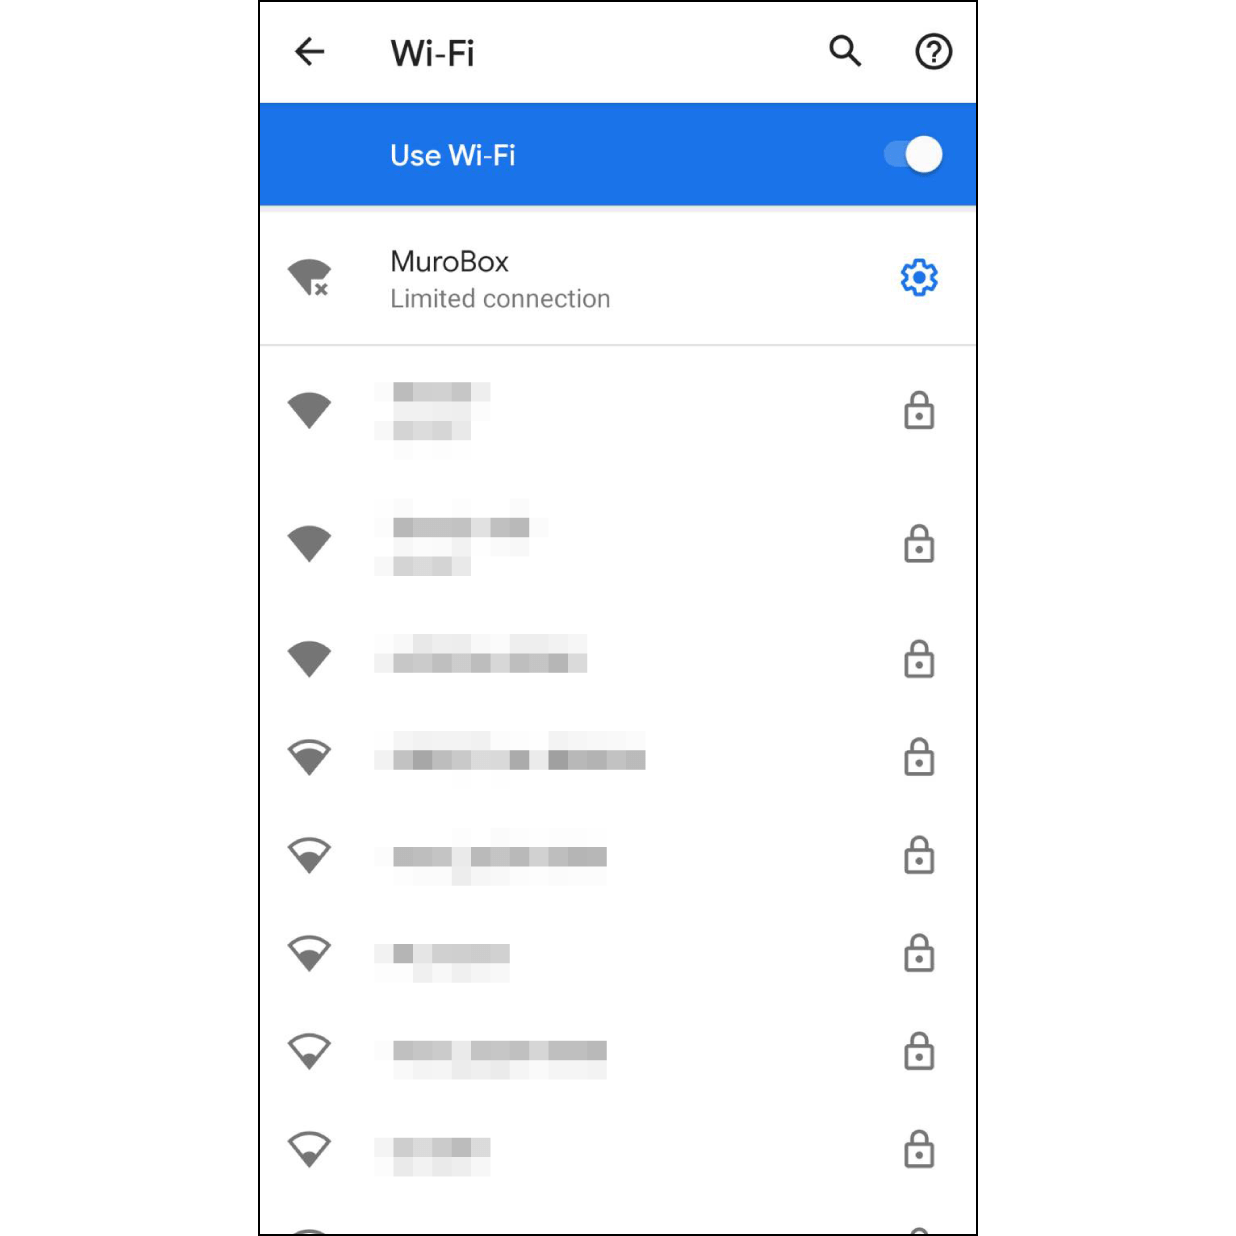 """5. Connect to Muro Box Wi-FiThe newer version of Android phone will automatically connect to Muro Box Wi-Fi.  Older versions of Android phones will need to manually go to """"Wi-Fi settings"""", then select """"MuroBox"""" Wi-Fi. After Wi-Fi is connected, go back to the Muro Box app."""